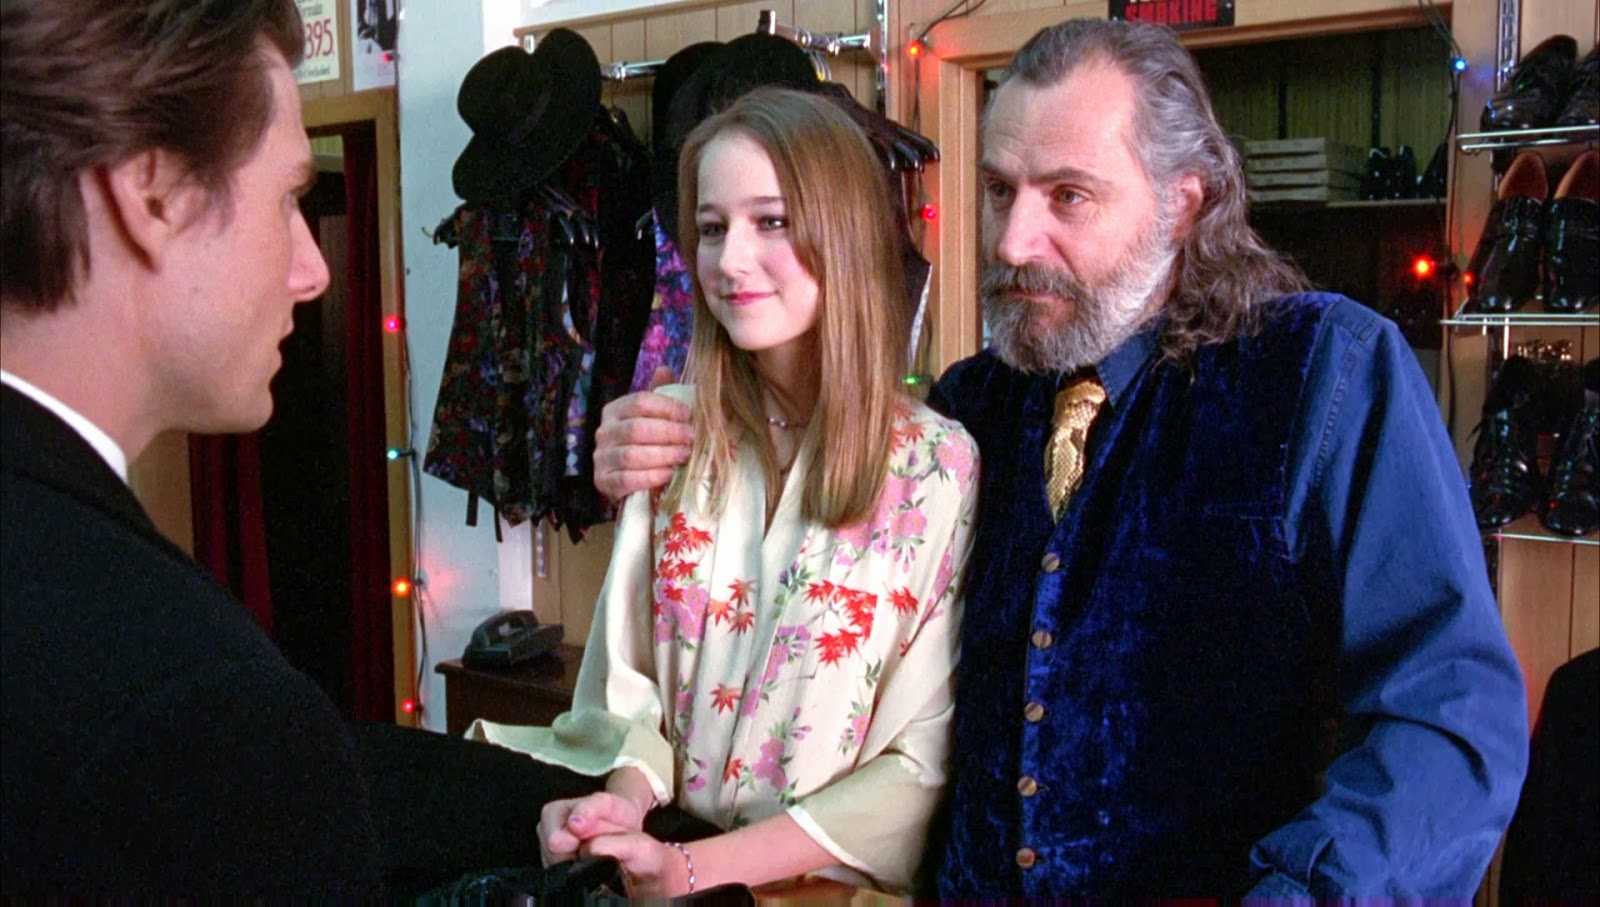 Blue moon cafe only a peak kubricks eyes wide shut bill argues with this vice but sees the girl wants to be animalized at the beginning of ews helena wears the same clothes of the barbie dolls she buycottarizona